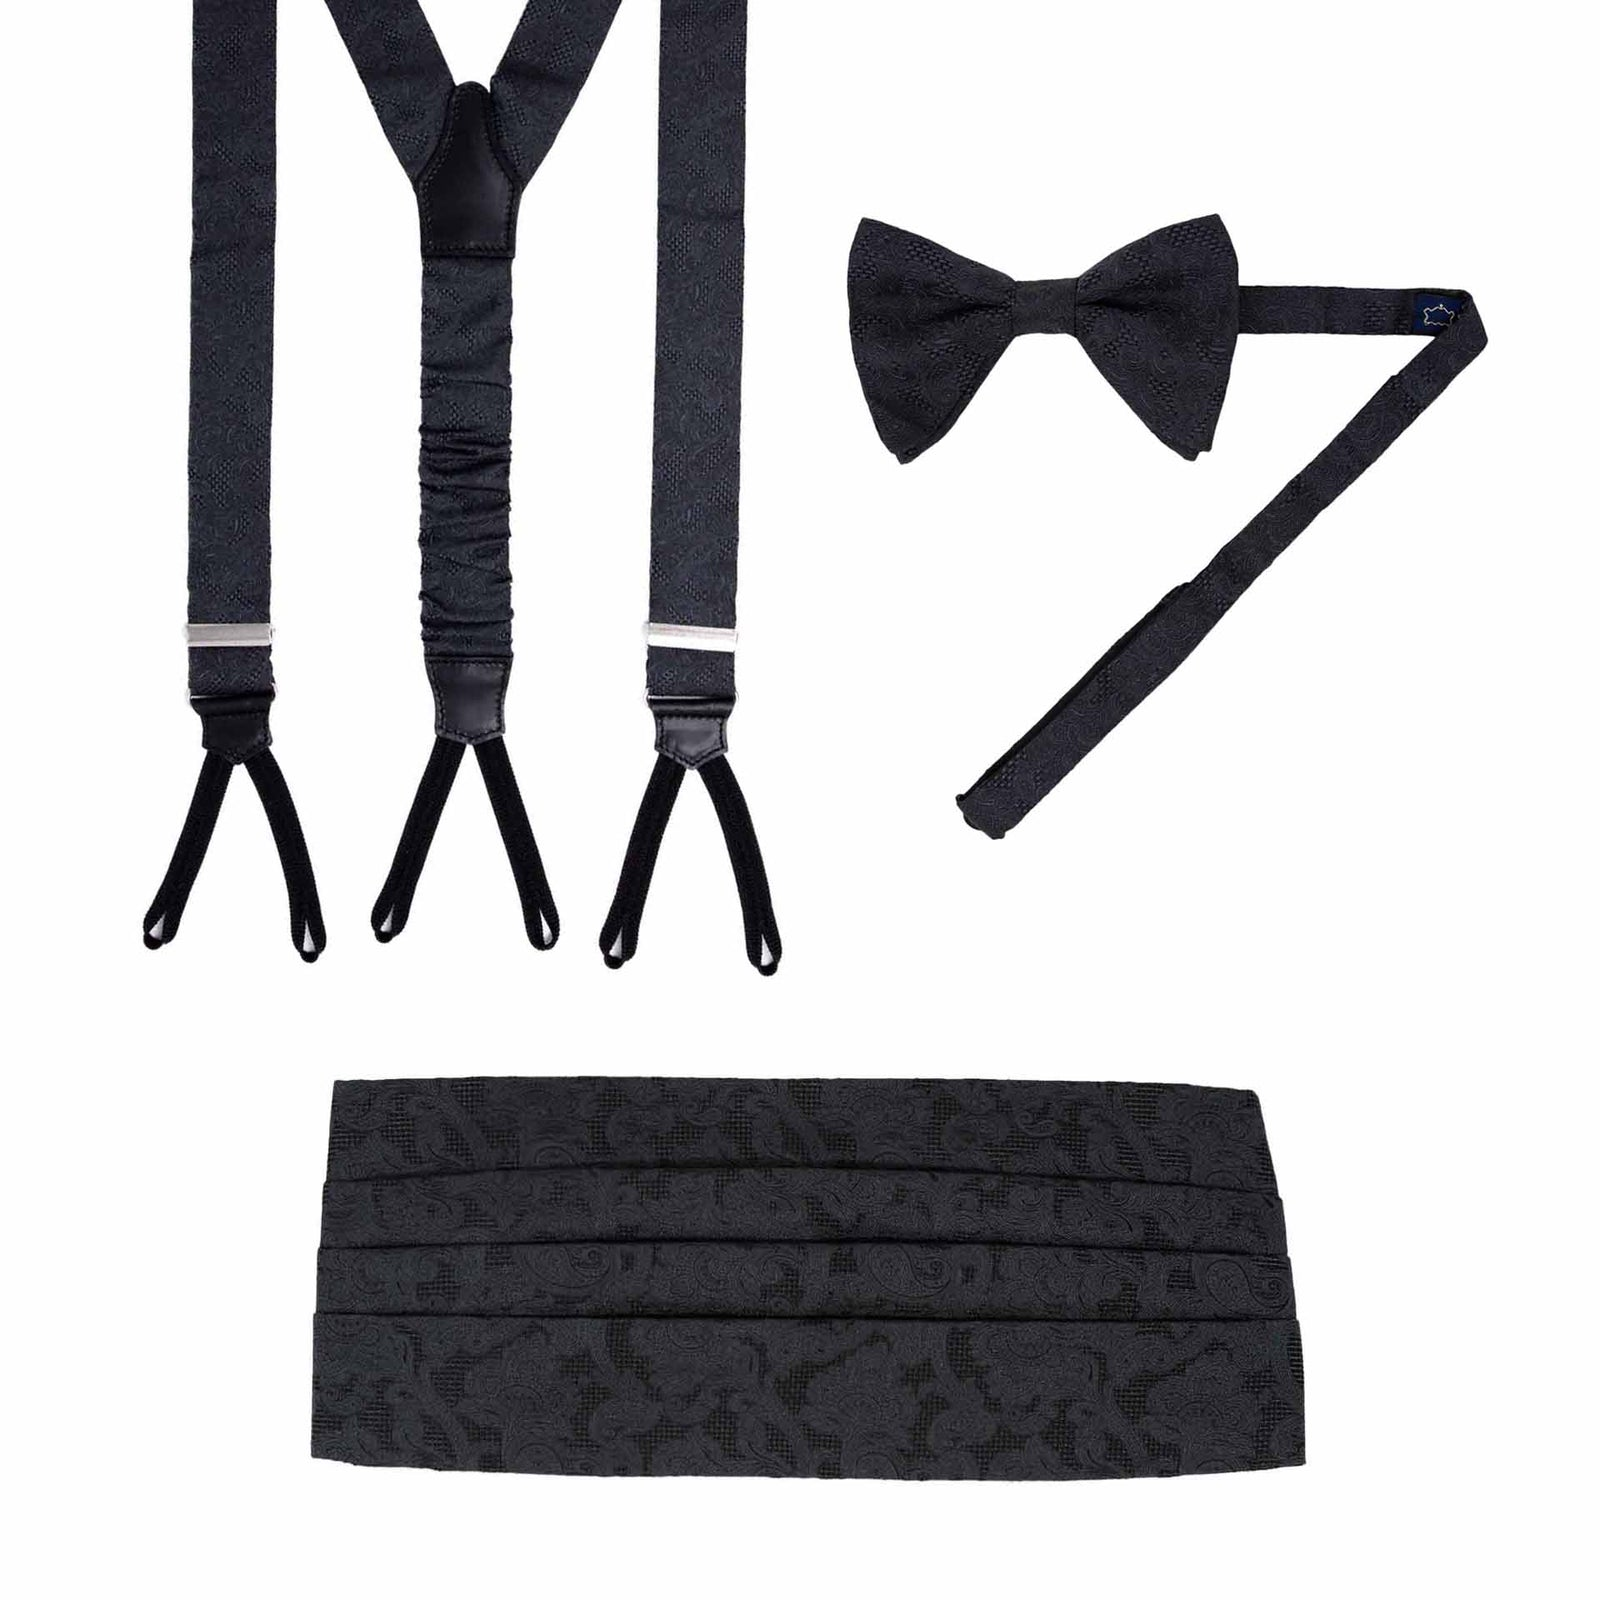 Suspenders, Pre-Tied Bow-tie and Cummerbund Black Jacquard Silk Set - serafinesilk